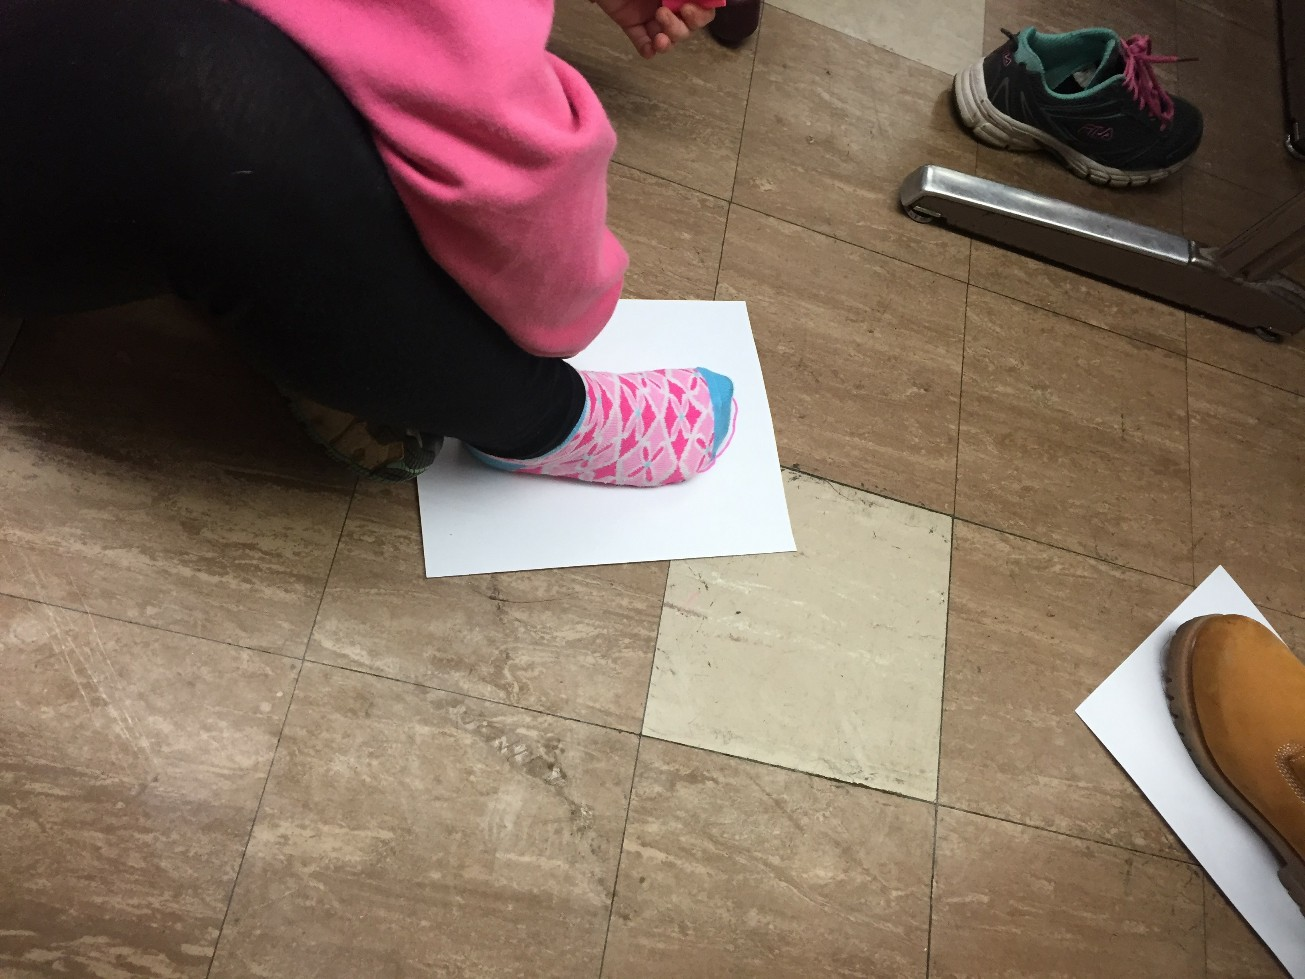 A student puts her foot on a piece of blank paper as part of a lesson on climate change at Cheston Elementary School.